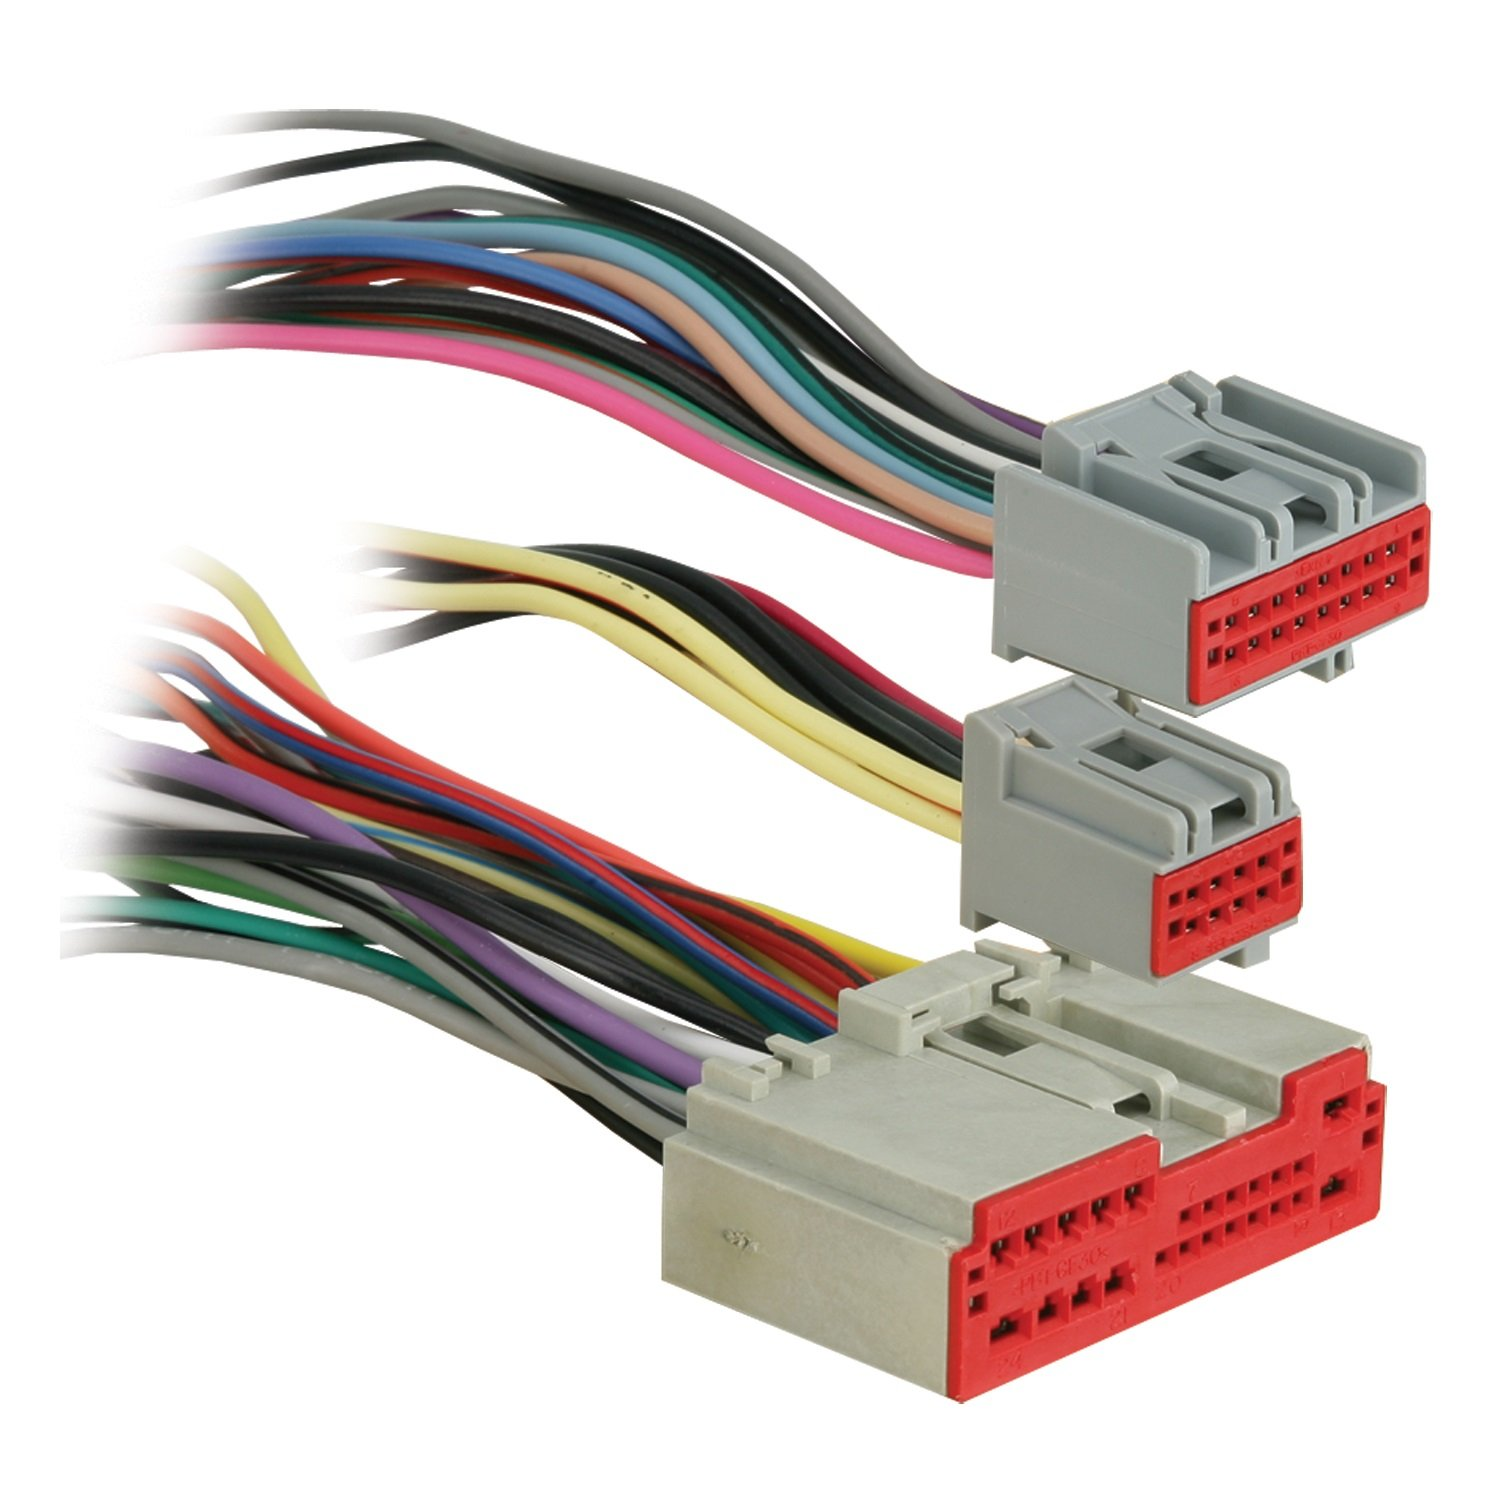 71qqcILSKiL._SL1500_ amazon com metra reverse wiring harness 71 5520 1 for select 2003 metra 70-5520 wiring harness at nearapp.co